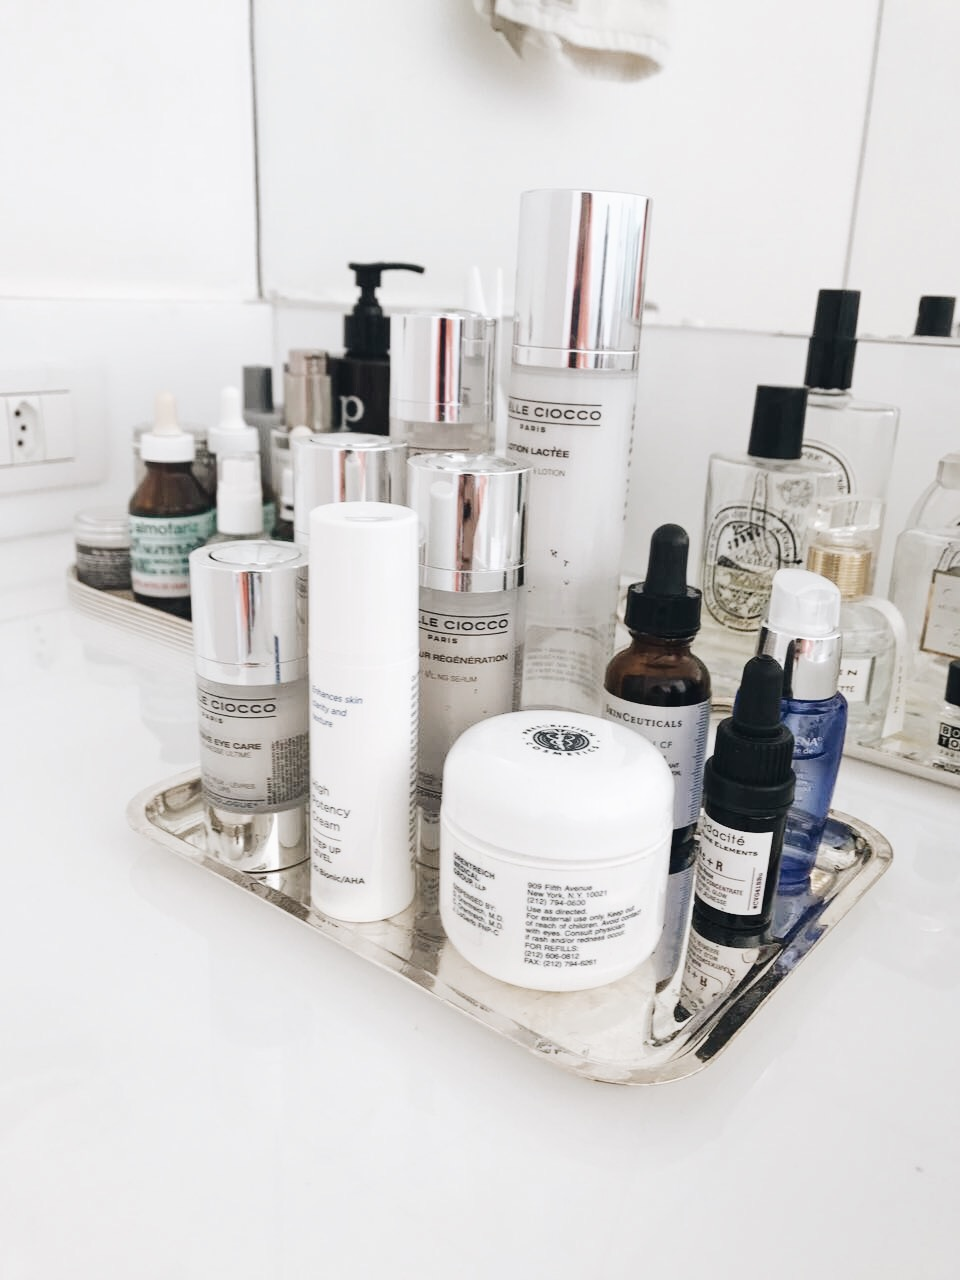 IMG 0755 - Top Shelf: A Beauty Routine da Helena Sicupira